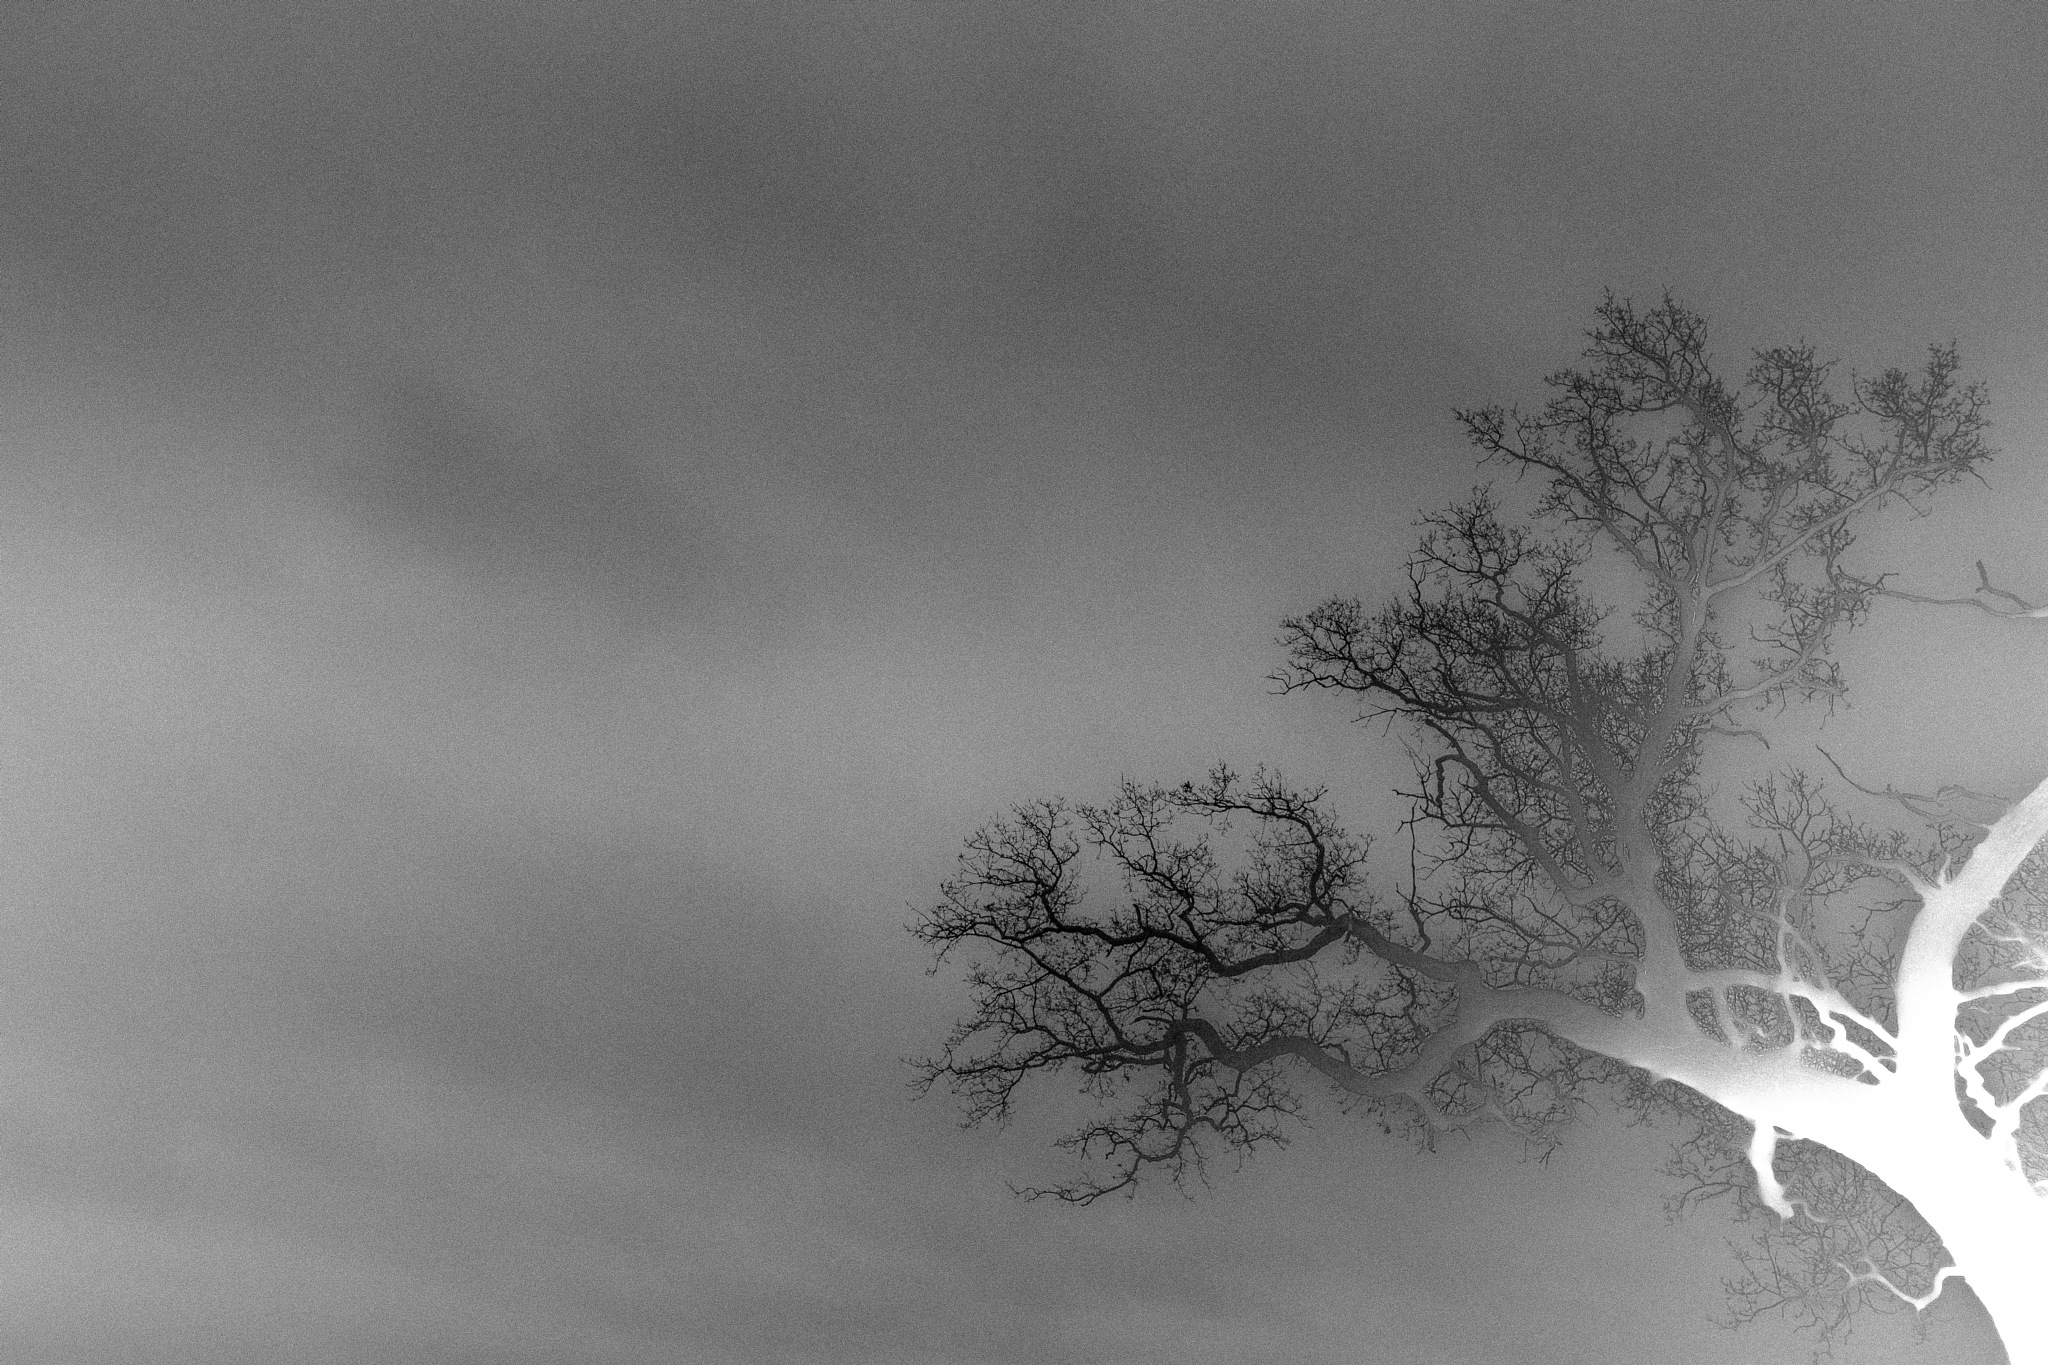 Negative space by Seonaid Teal Photography